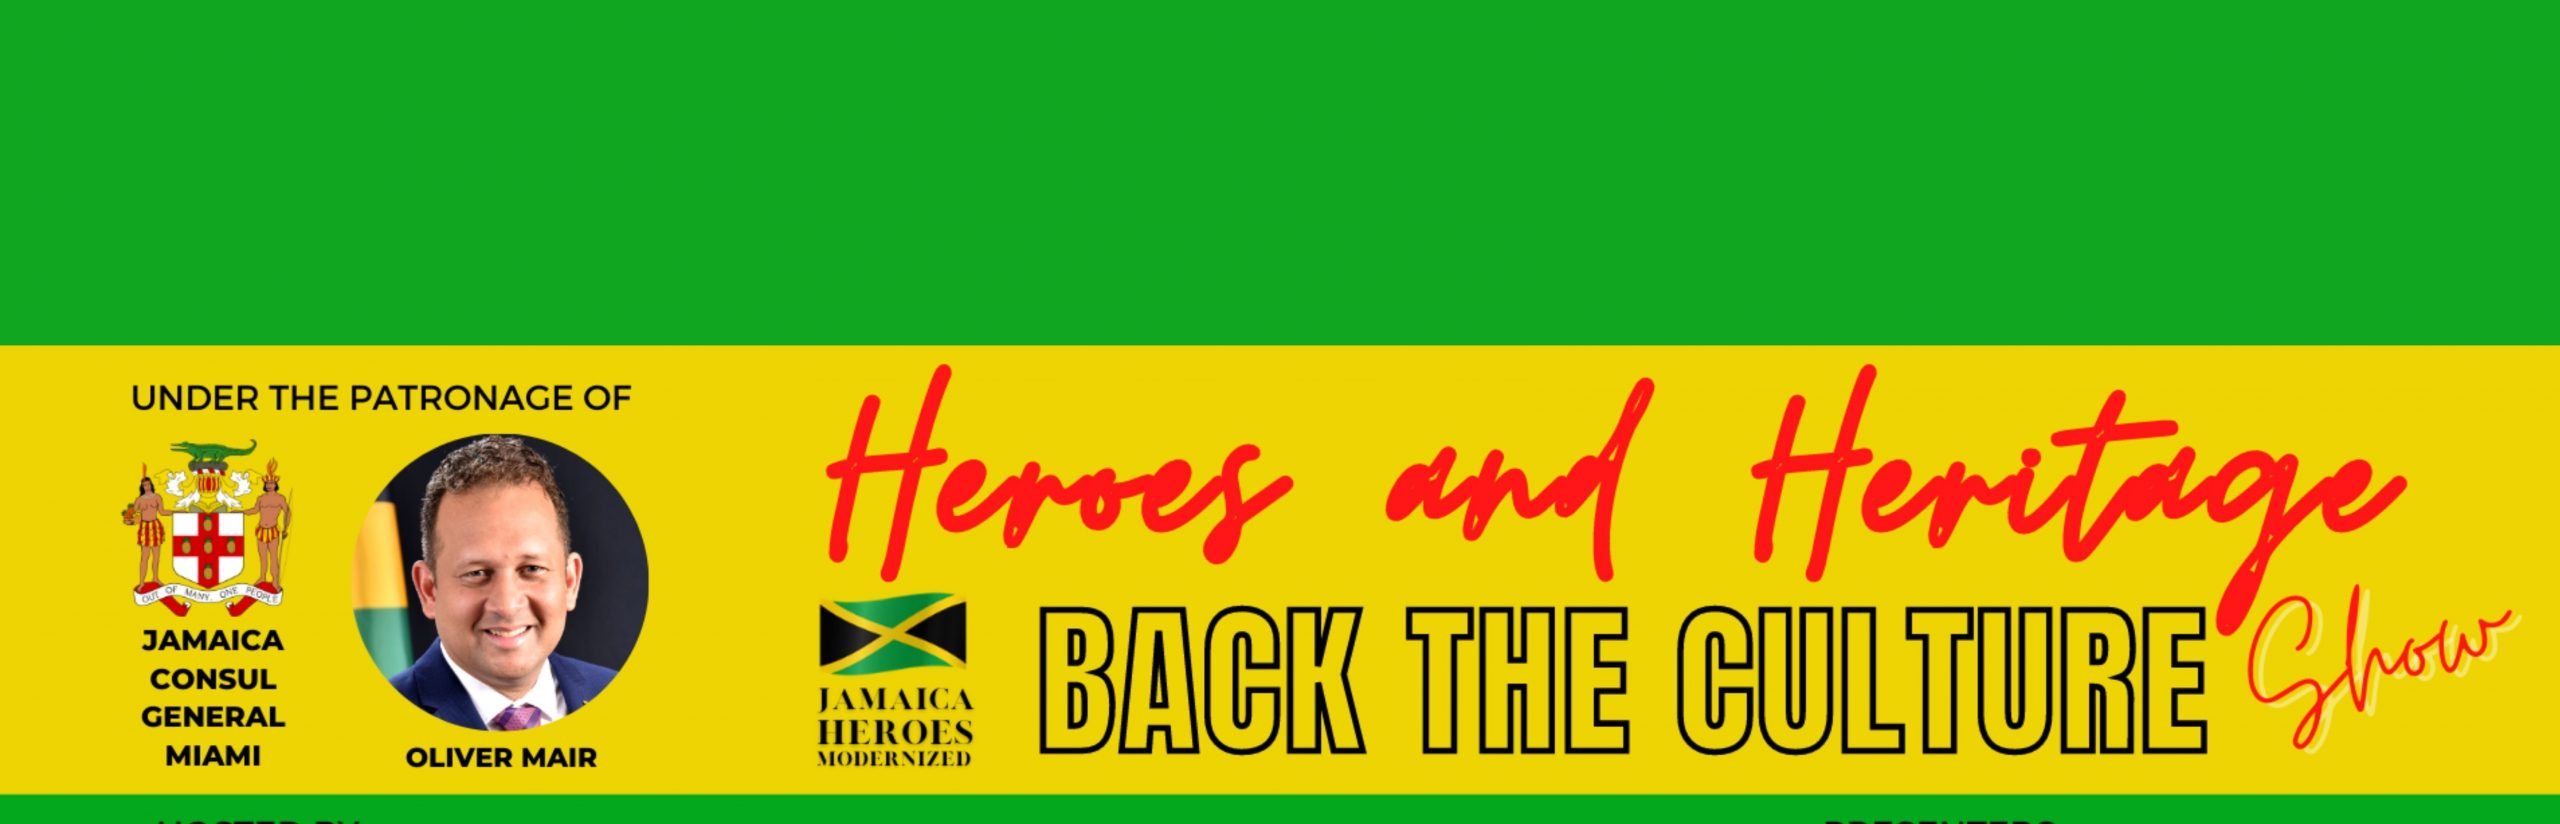 Jamaica CG Miami and Jamaica Heroes Modernized partner to commemorate Jamaica's Heritage Month and National Heroes Day on Oct 17, 2021.